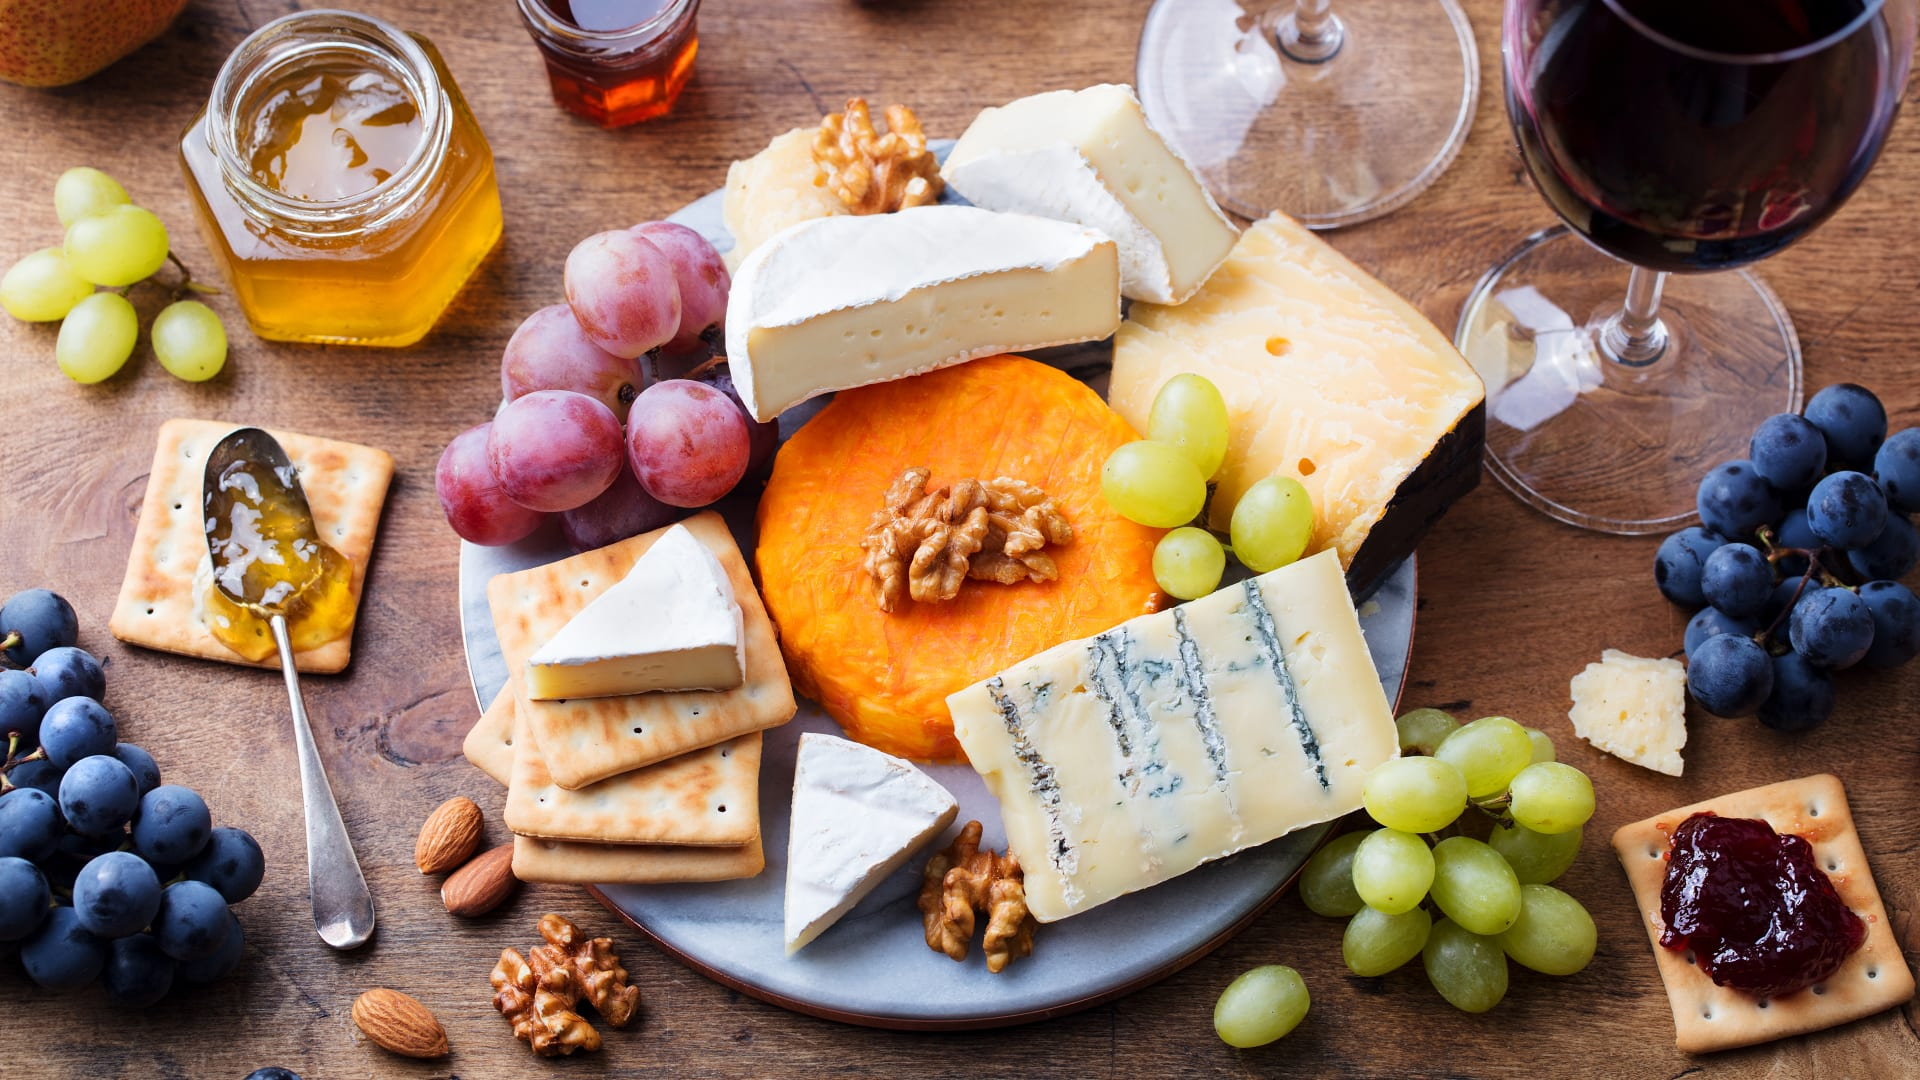 Table with cheese platter and grapes